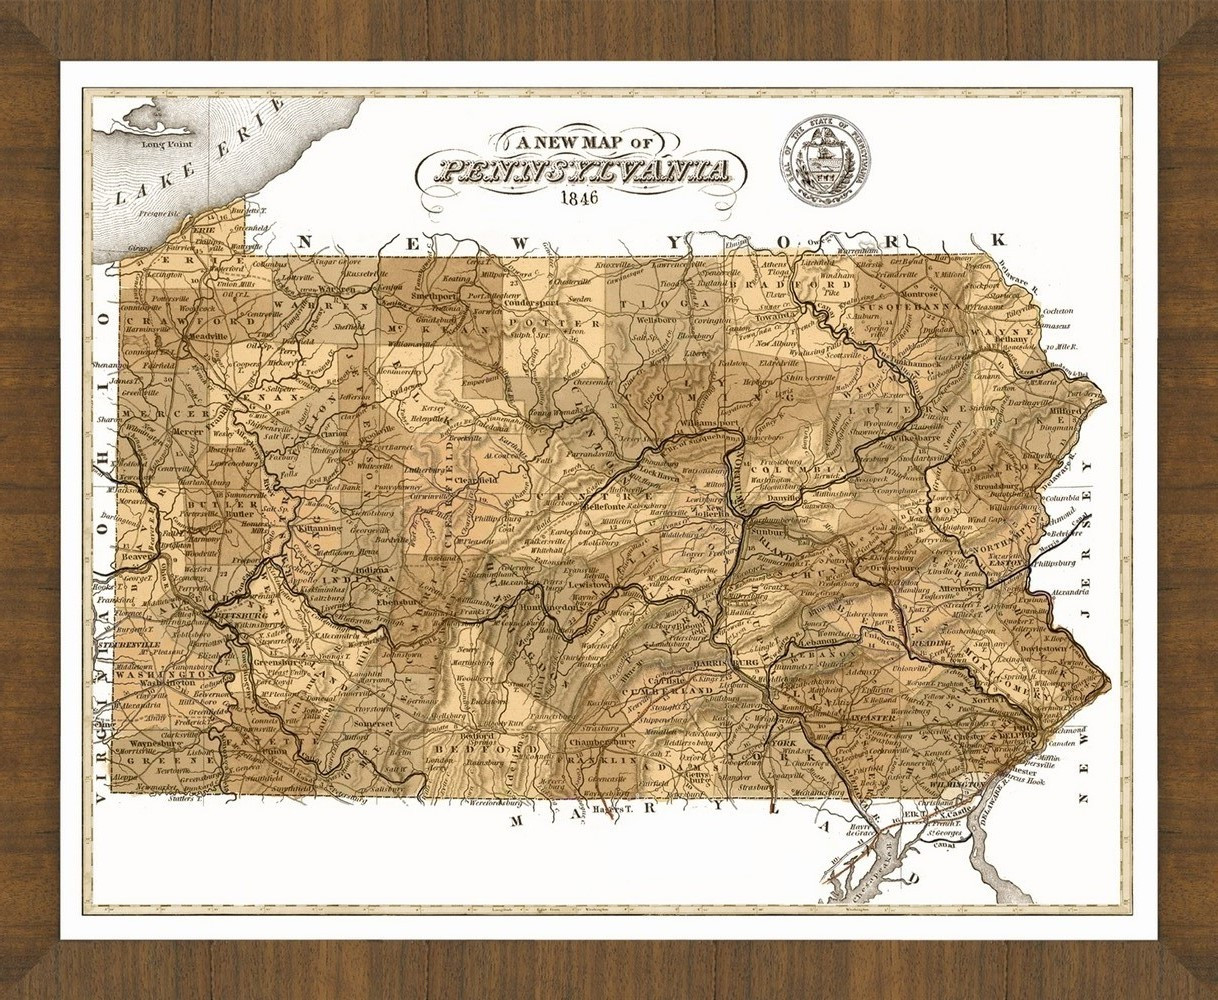 Old Map of Pennsylvania